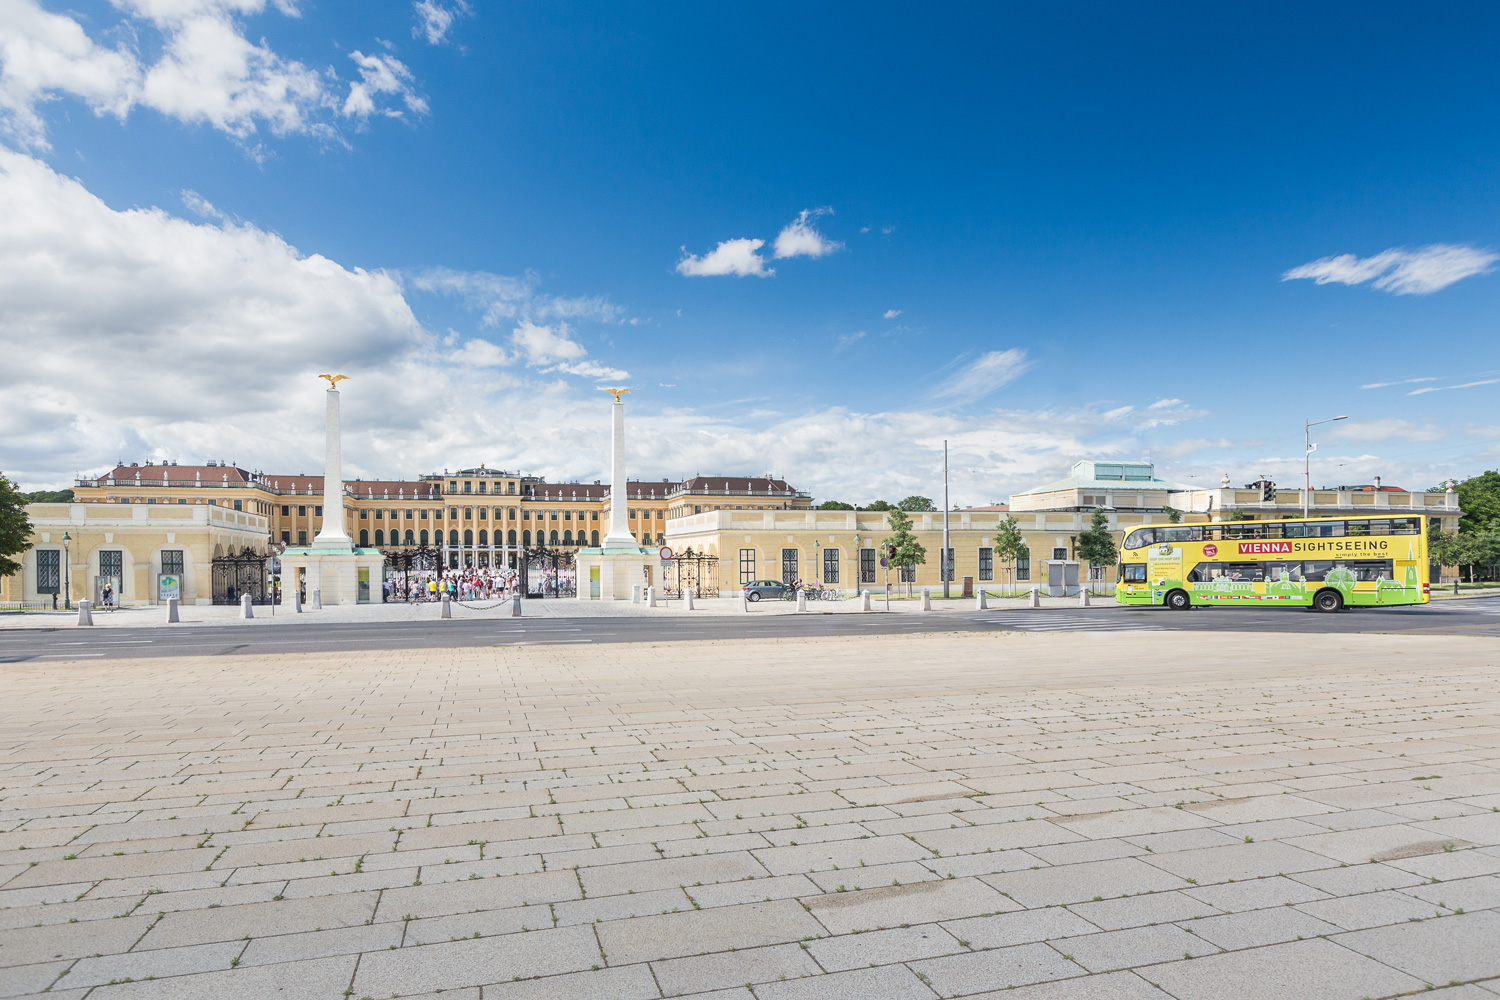 Vienna Sightseeing Tours in front of the Schoenbrunn Palace (c) VIENNA SIGHTSEEING TOURS/Maximilian Rosenberger